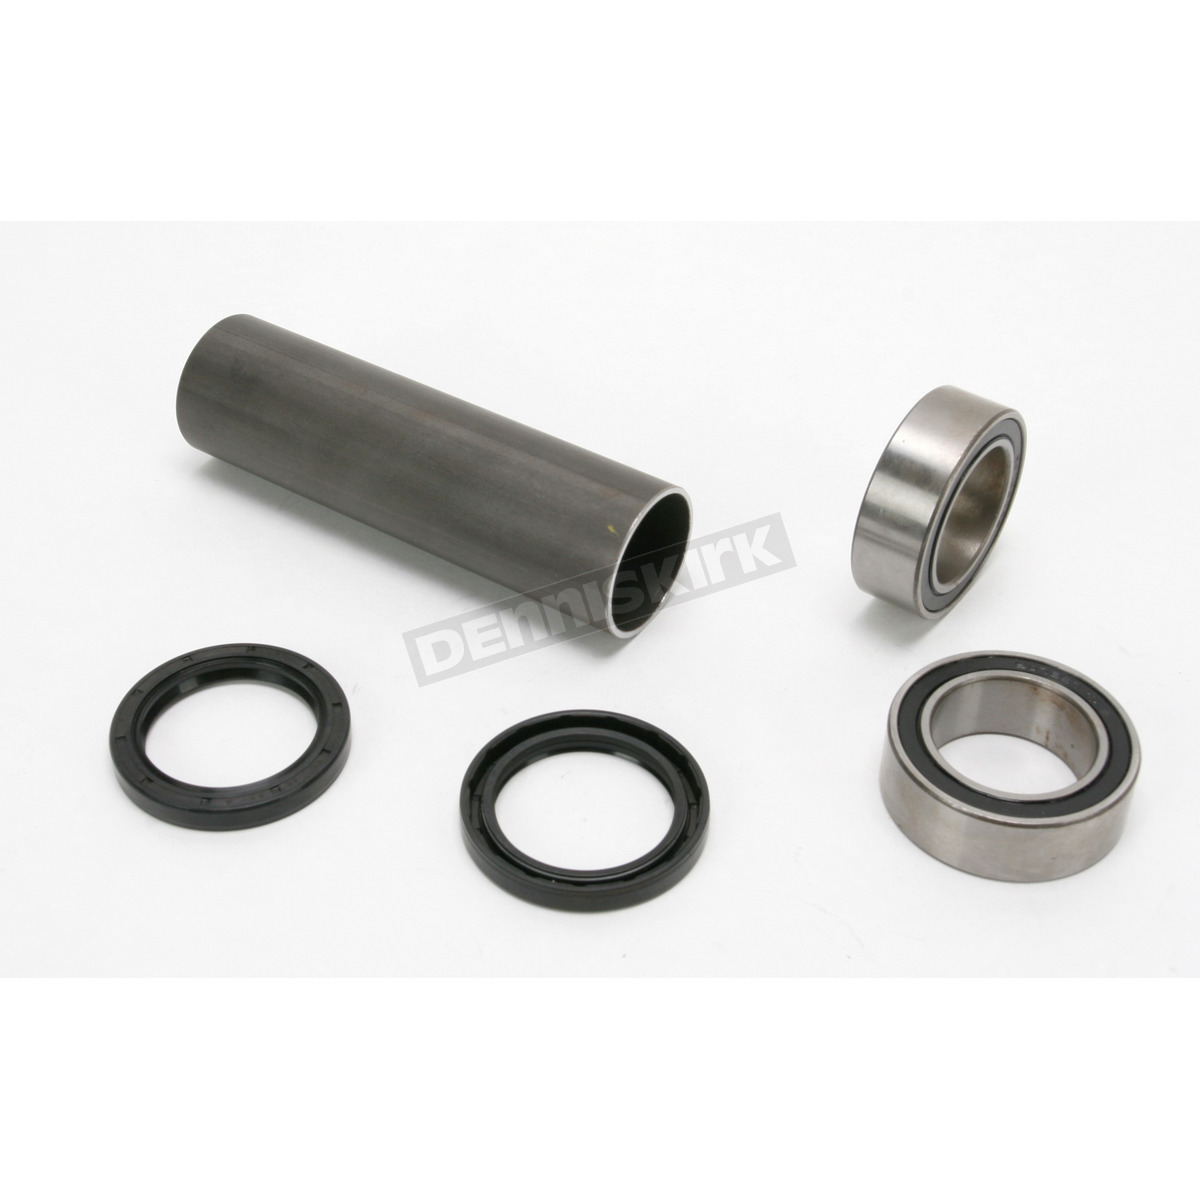 Axle Housing Rebuild Kit - 21P43103